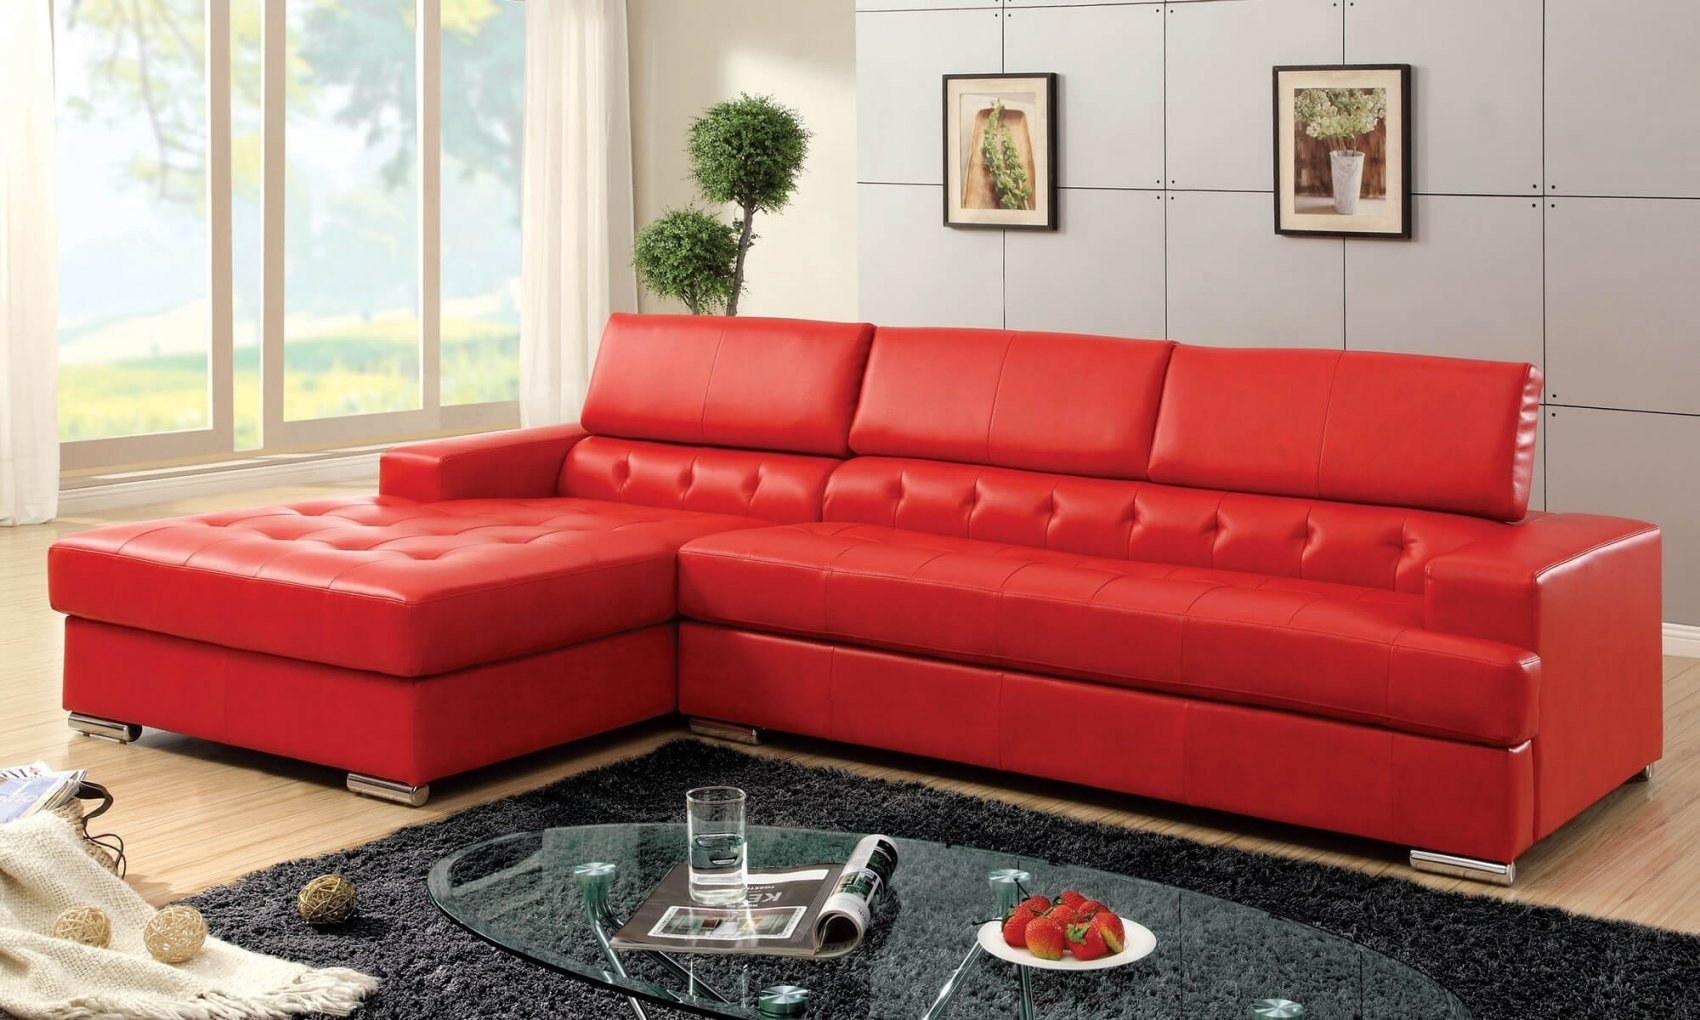 Red Leather Sectional Sofa Contemporary – Best Sectional In In Red Leather Sectional Couches (Image 7 of 10)